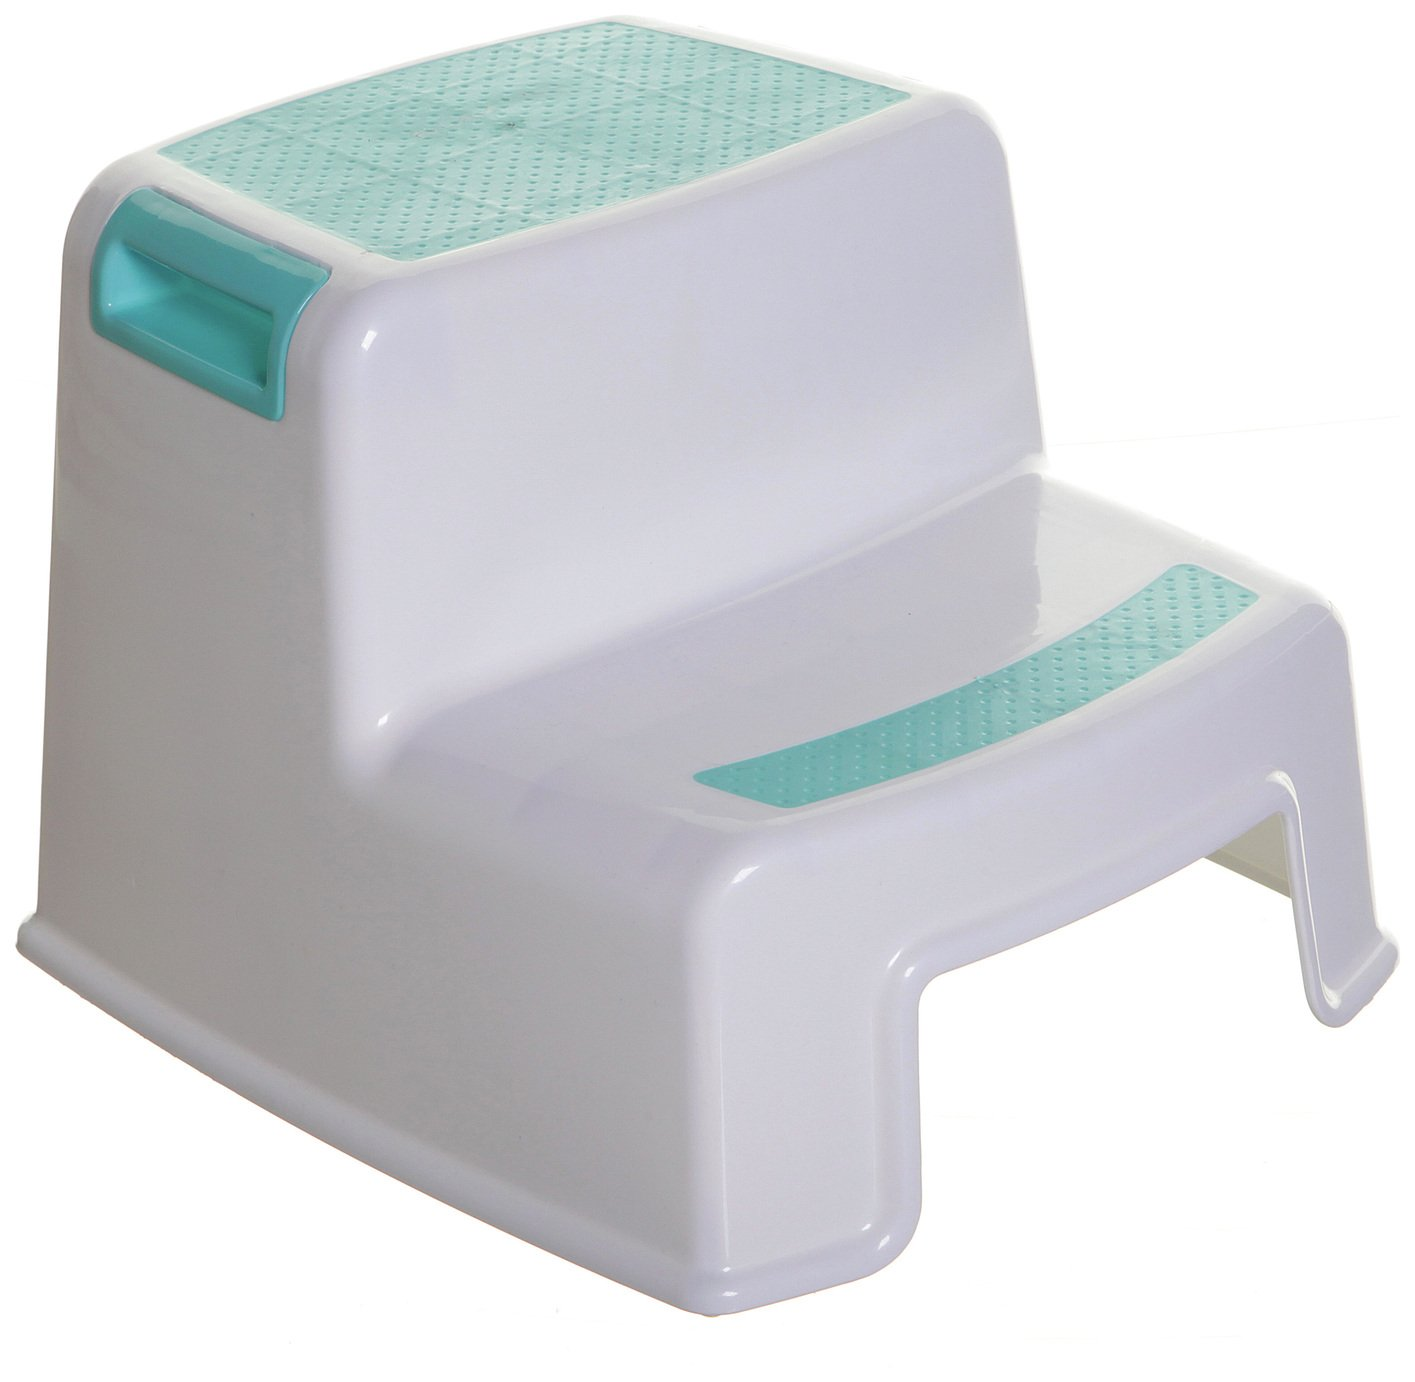 Dreambaby 2 Height Step Stool - Aqua.